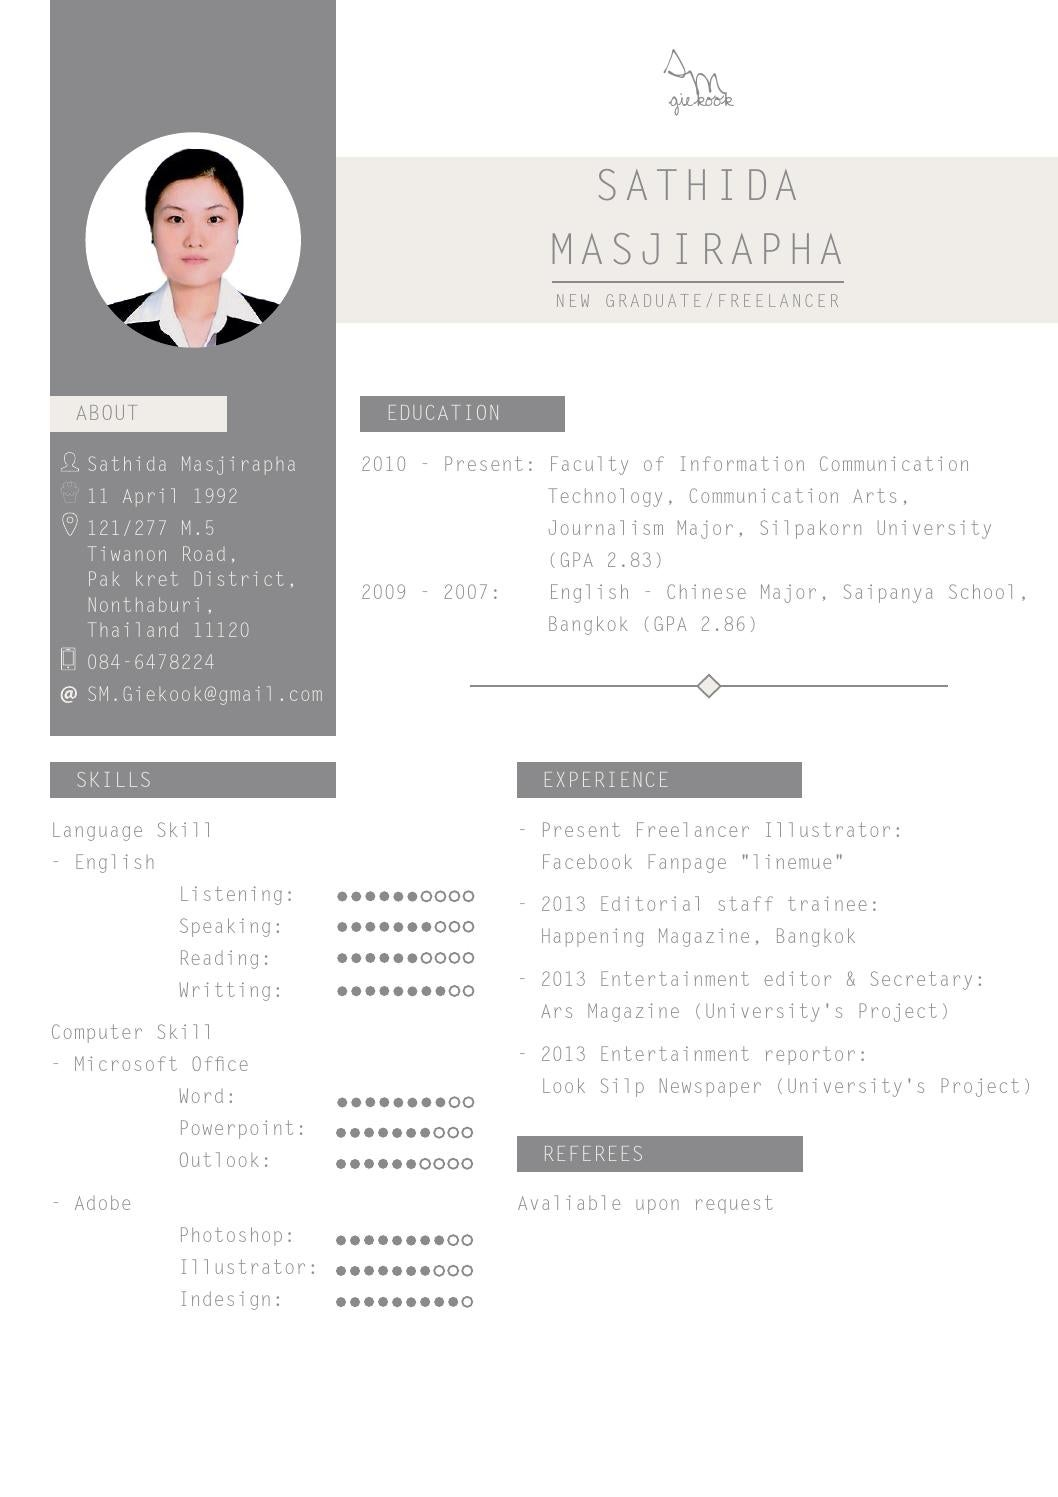 examples of professional resumes resume by giekook issuu 21620 | page 1